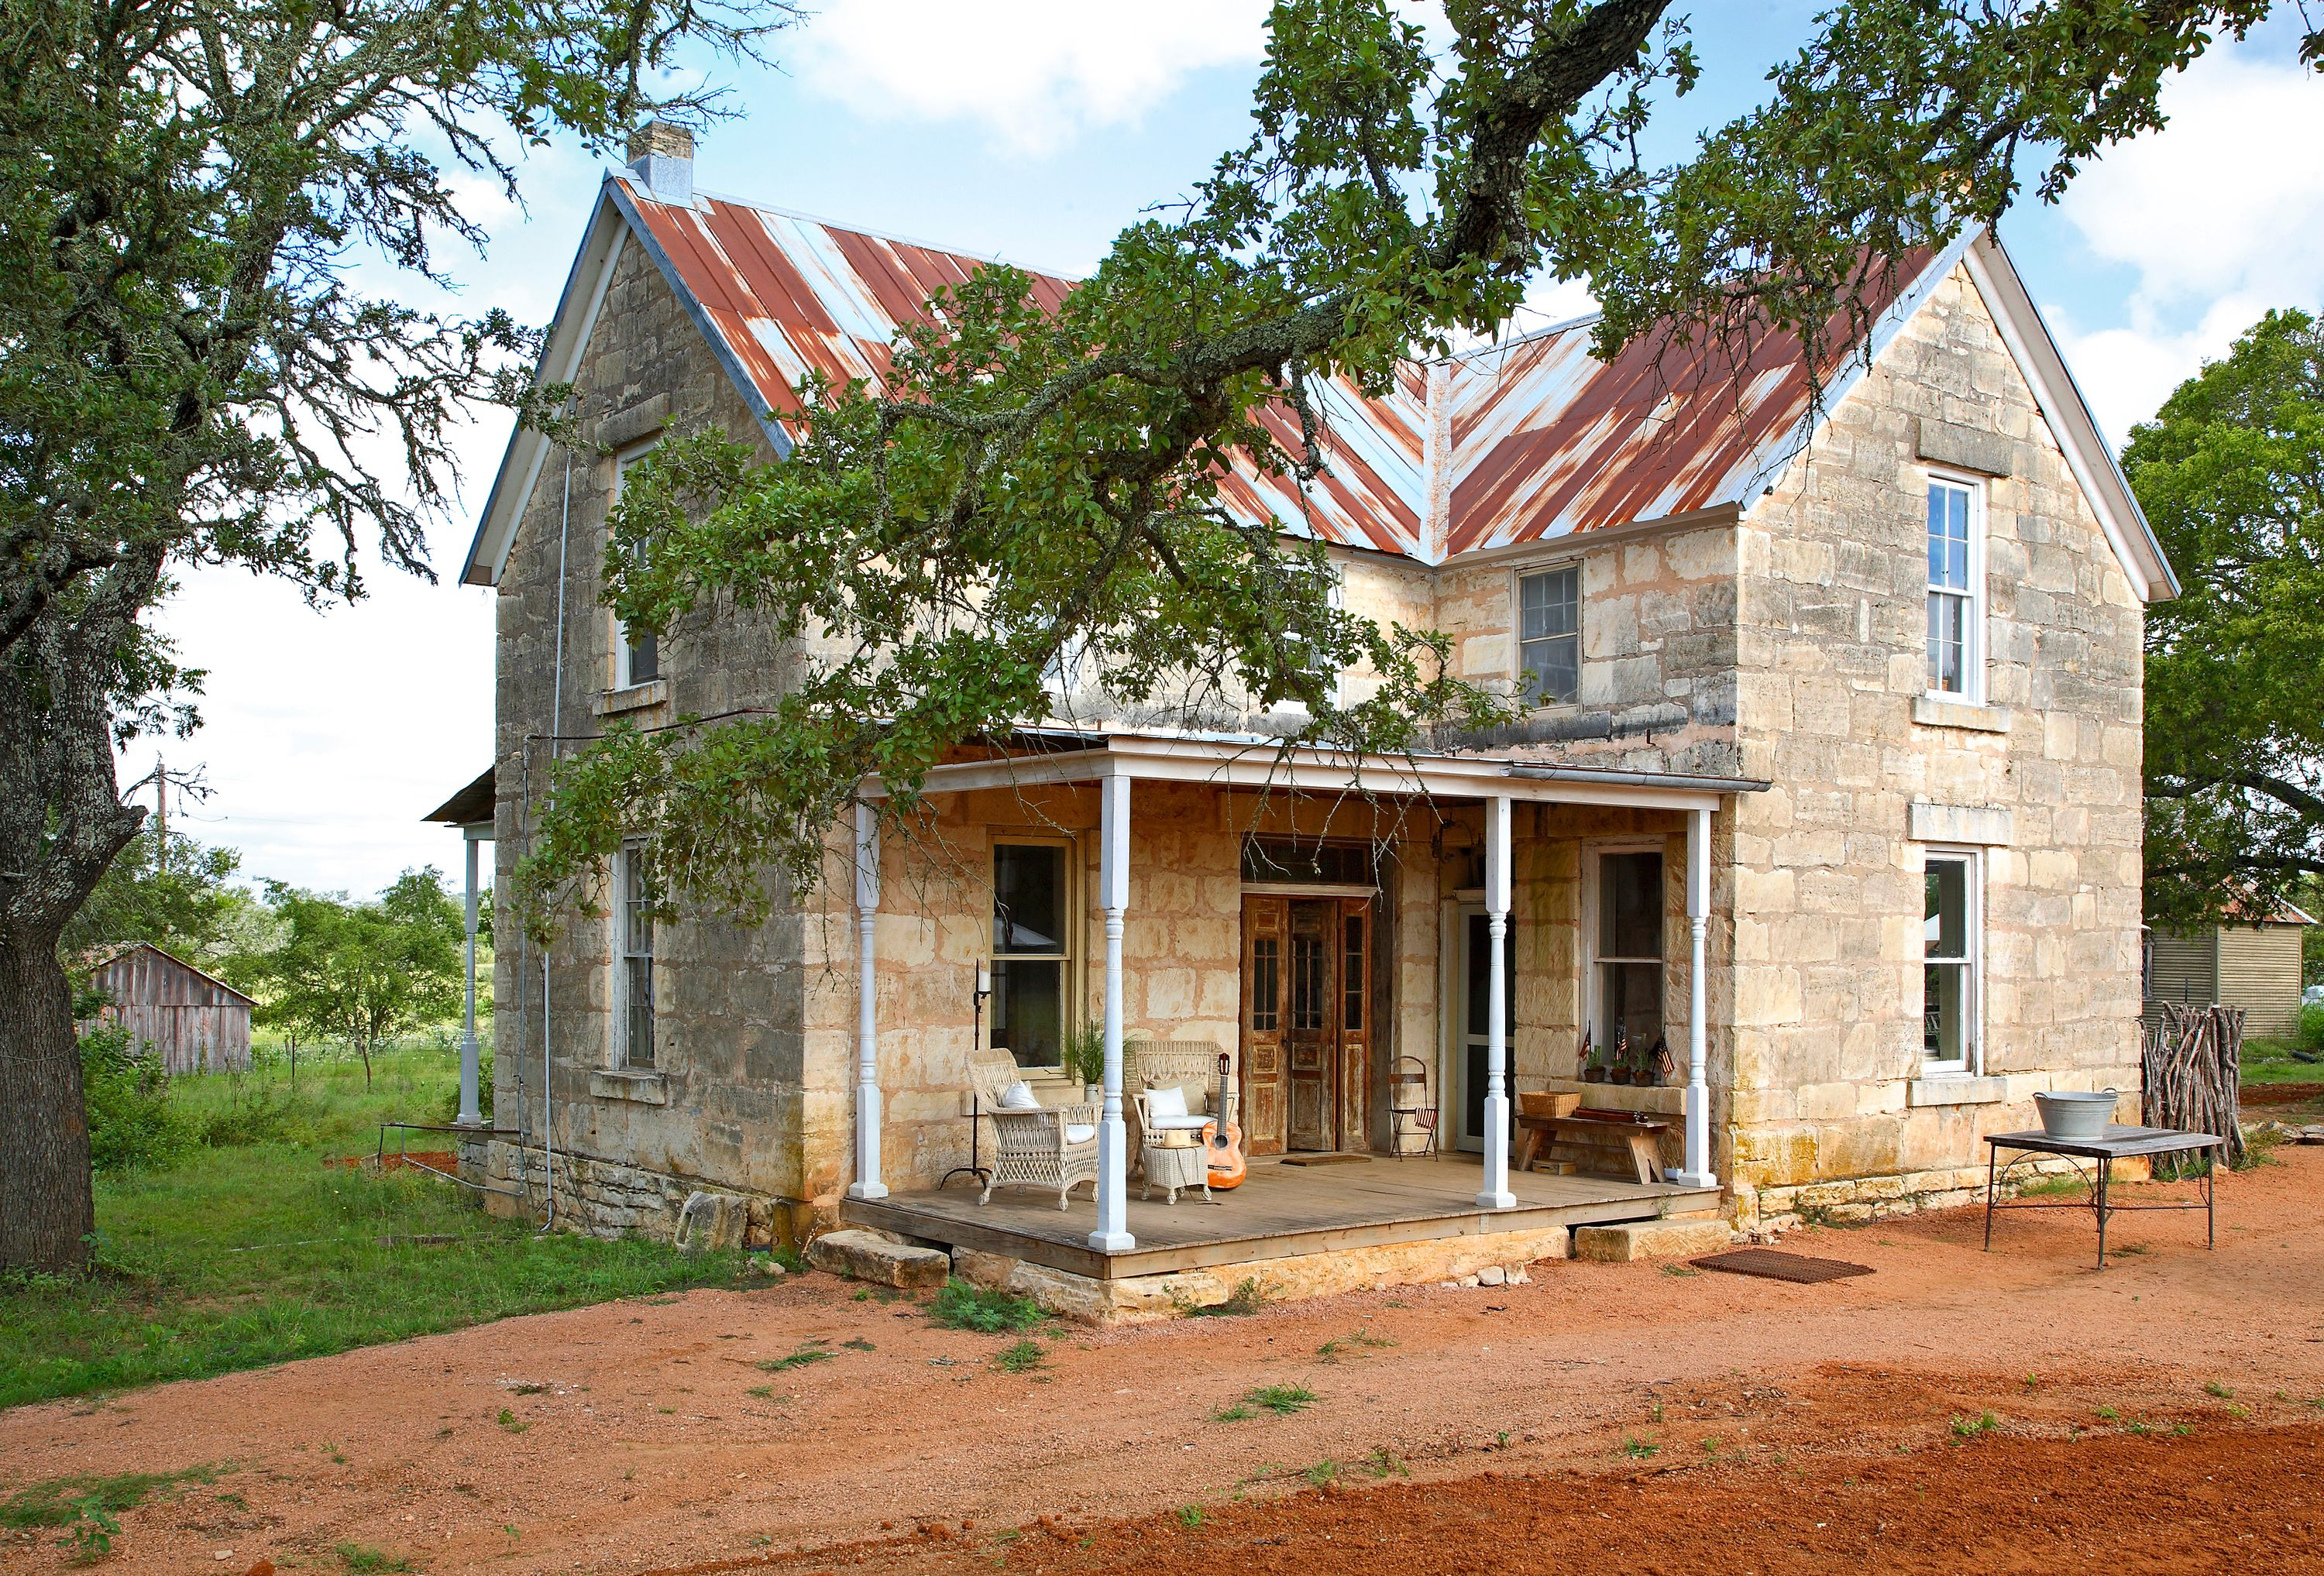 texas in houses news up sales percent sale home garland x photo of cabins for business preowned tx dallas march north